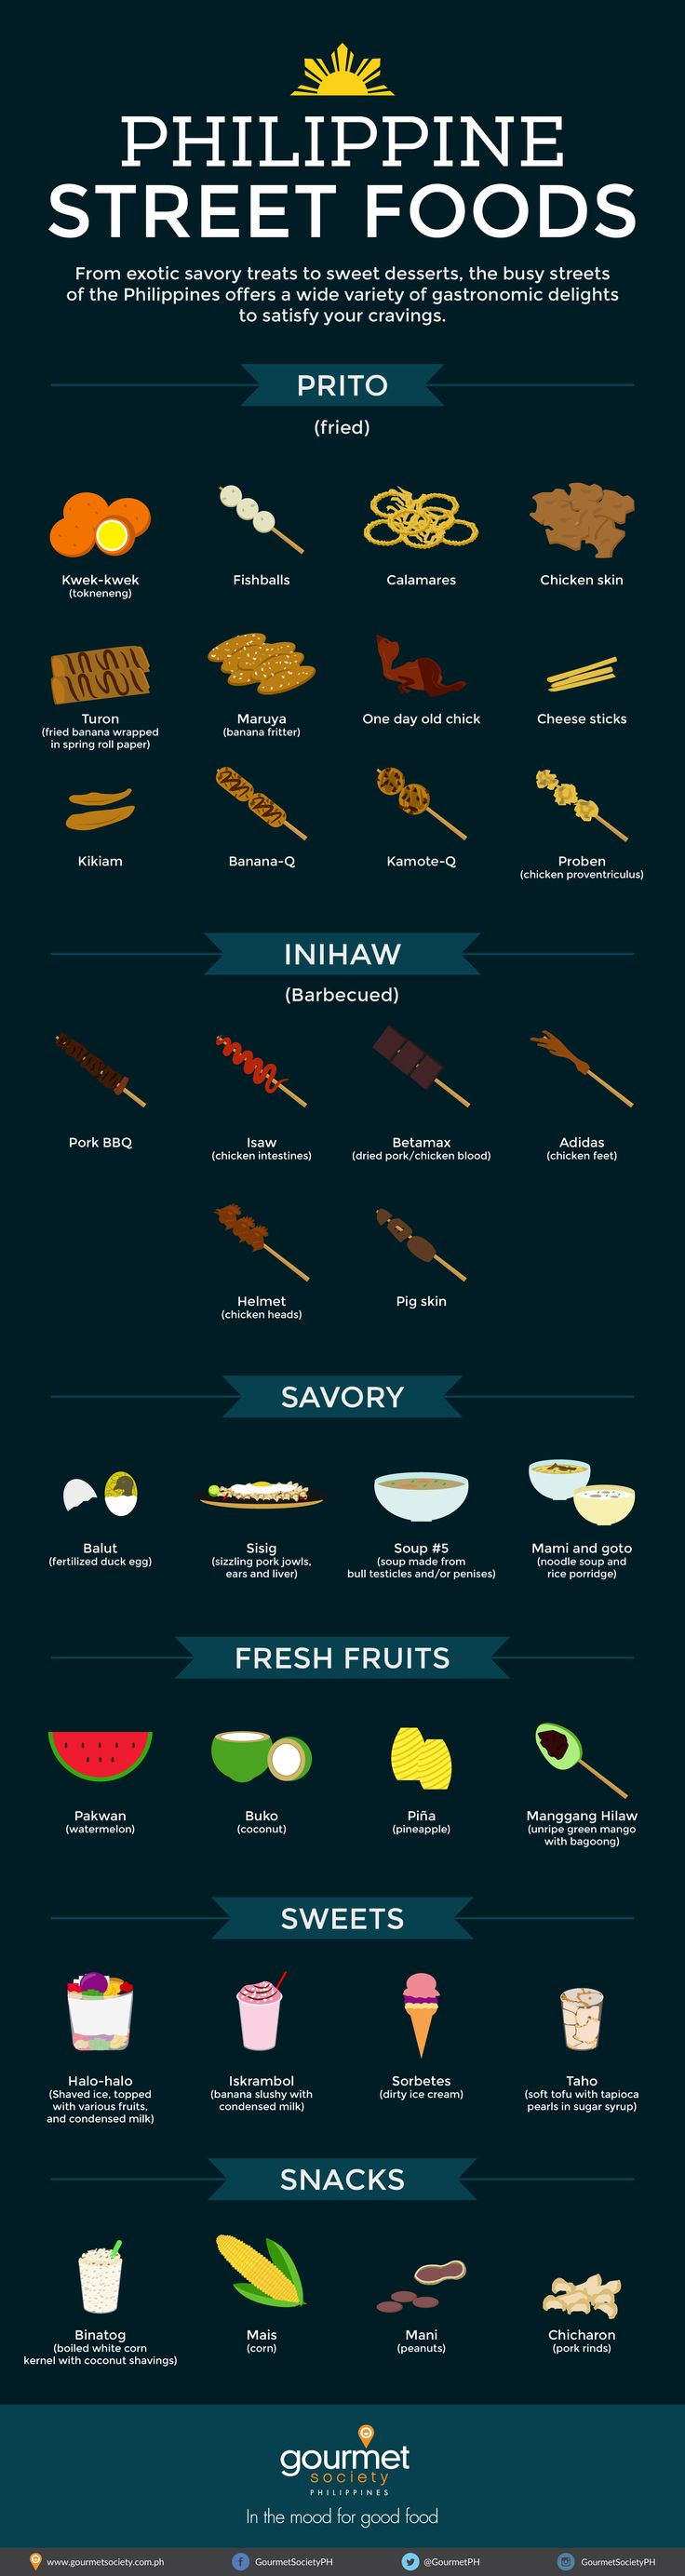 Philippine Street Foods, visualized. The country has quite a few snacks on offer even though the street food culture isn't as pronounced as, say, Thailand or Vietnam. I liked how this poster showcased them all in visual form!